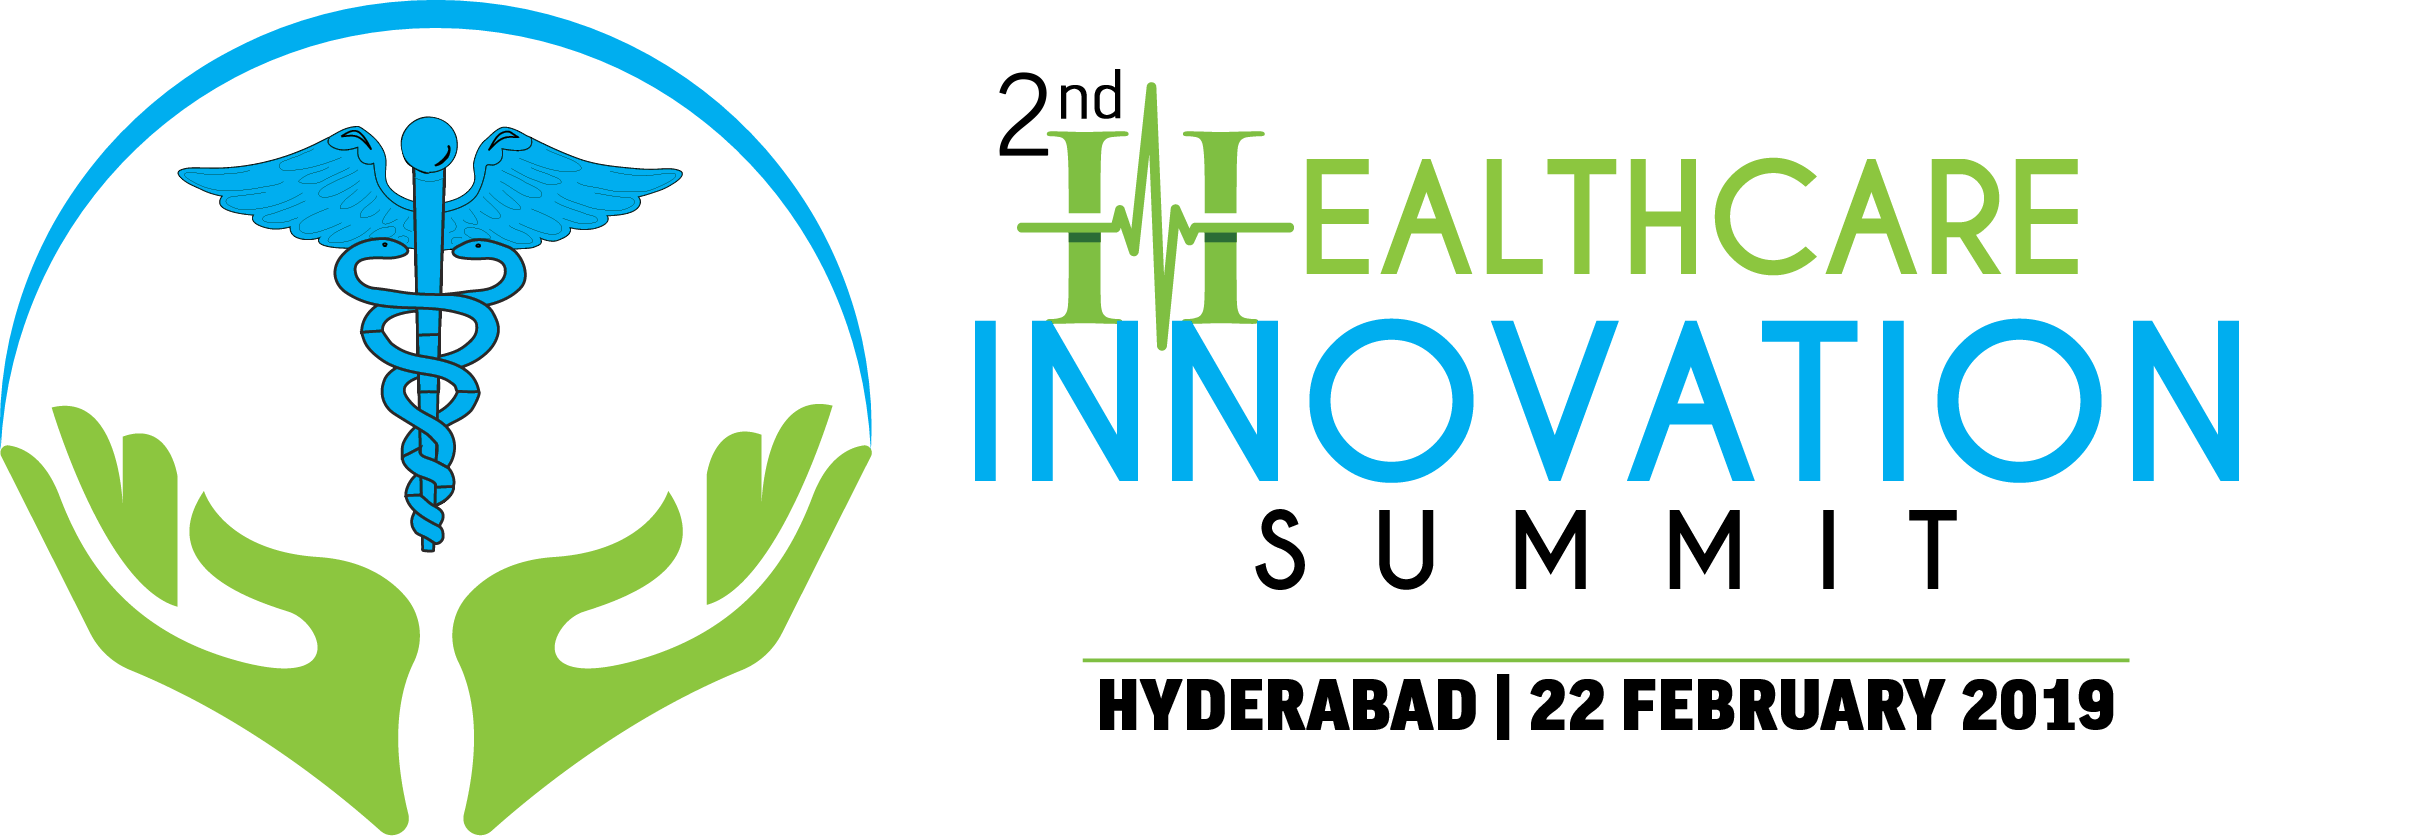 2nd Healthcare Innovation Summit, Hyderabad